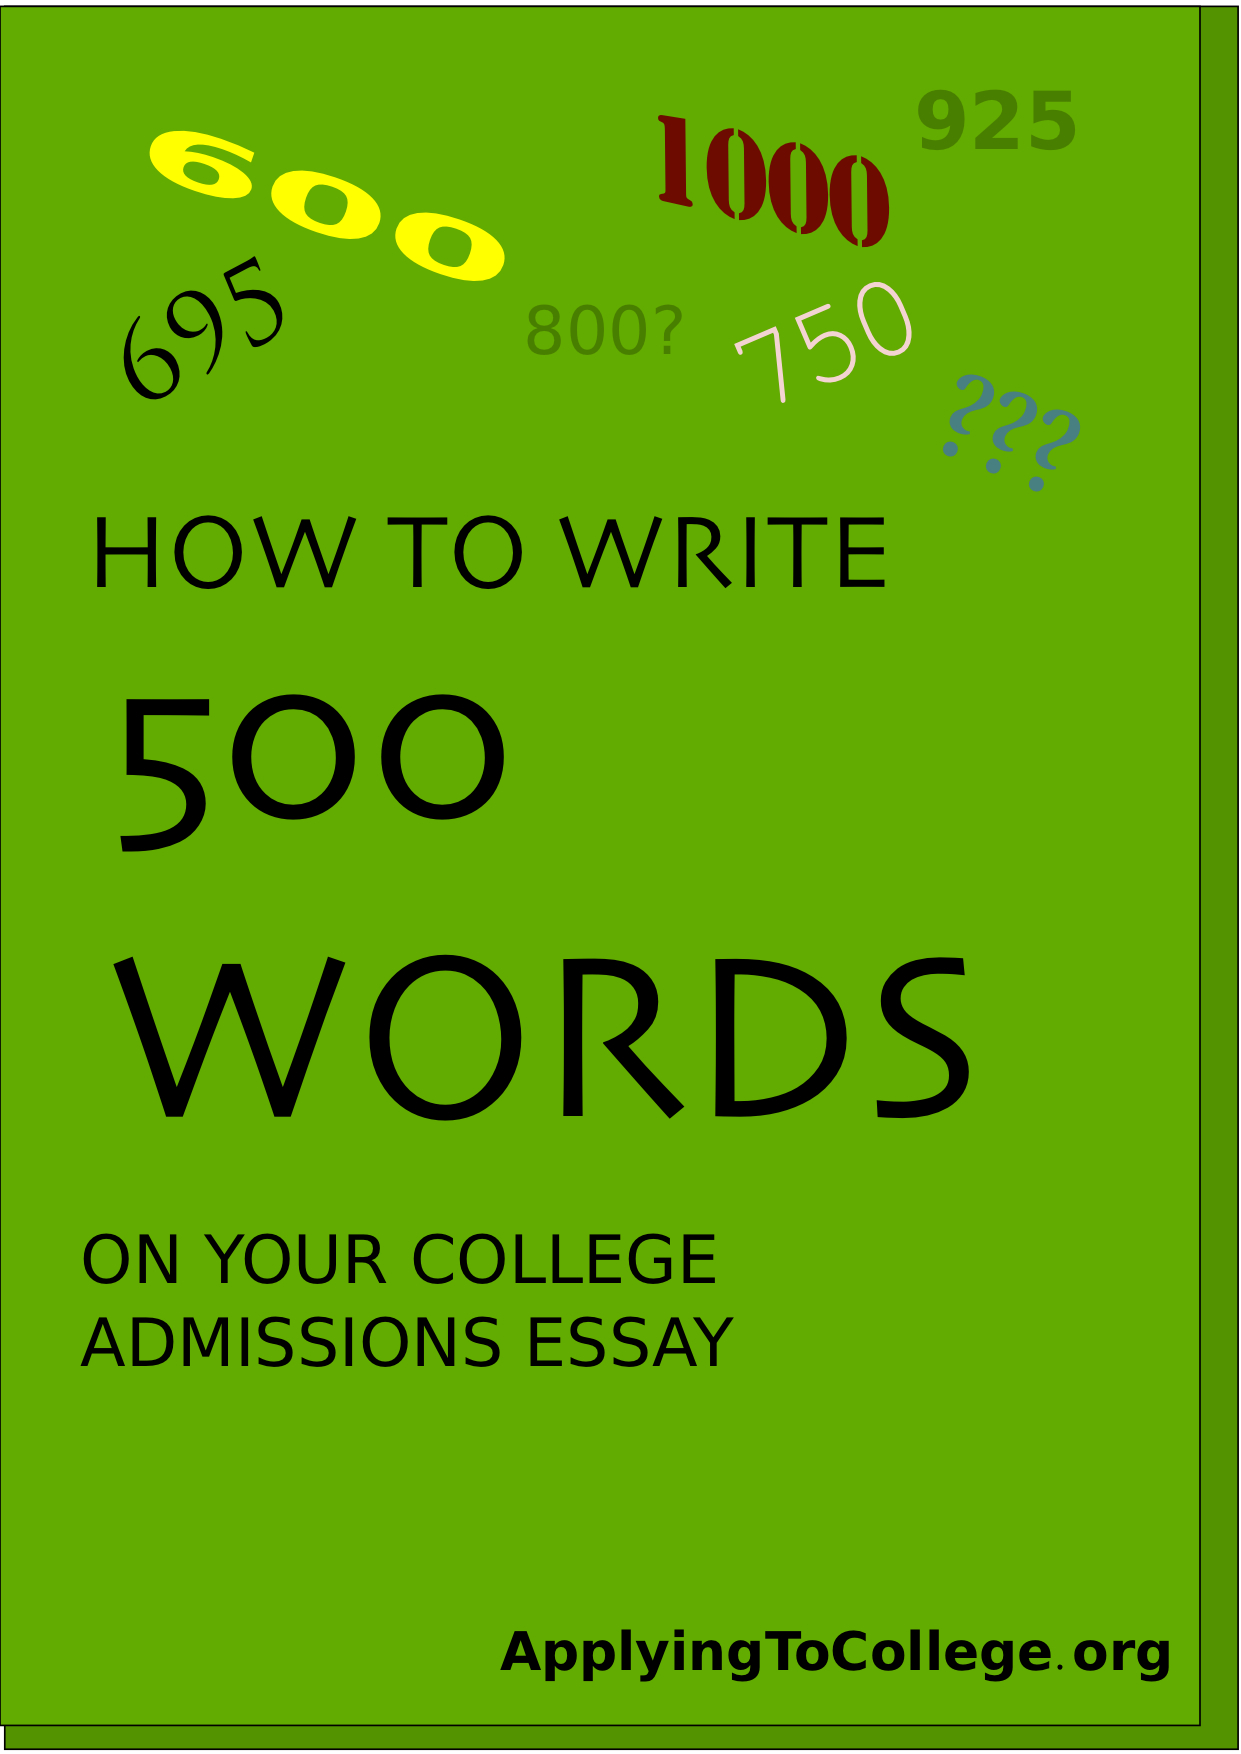 Common college essays